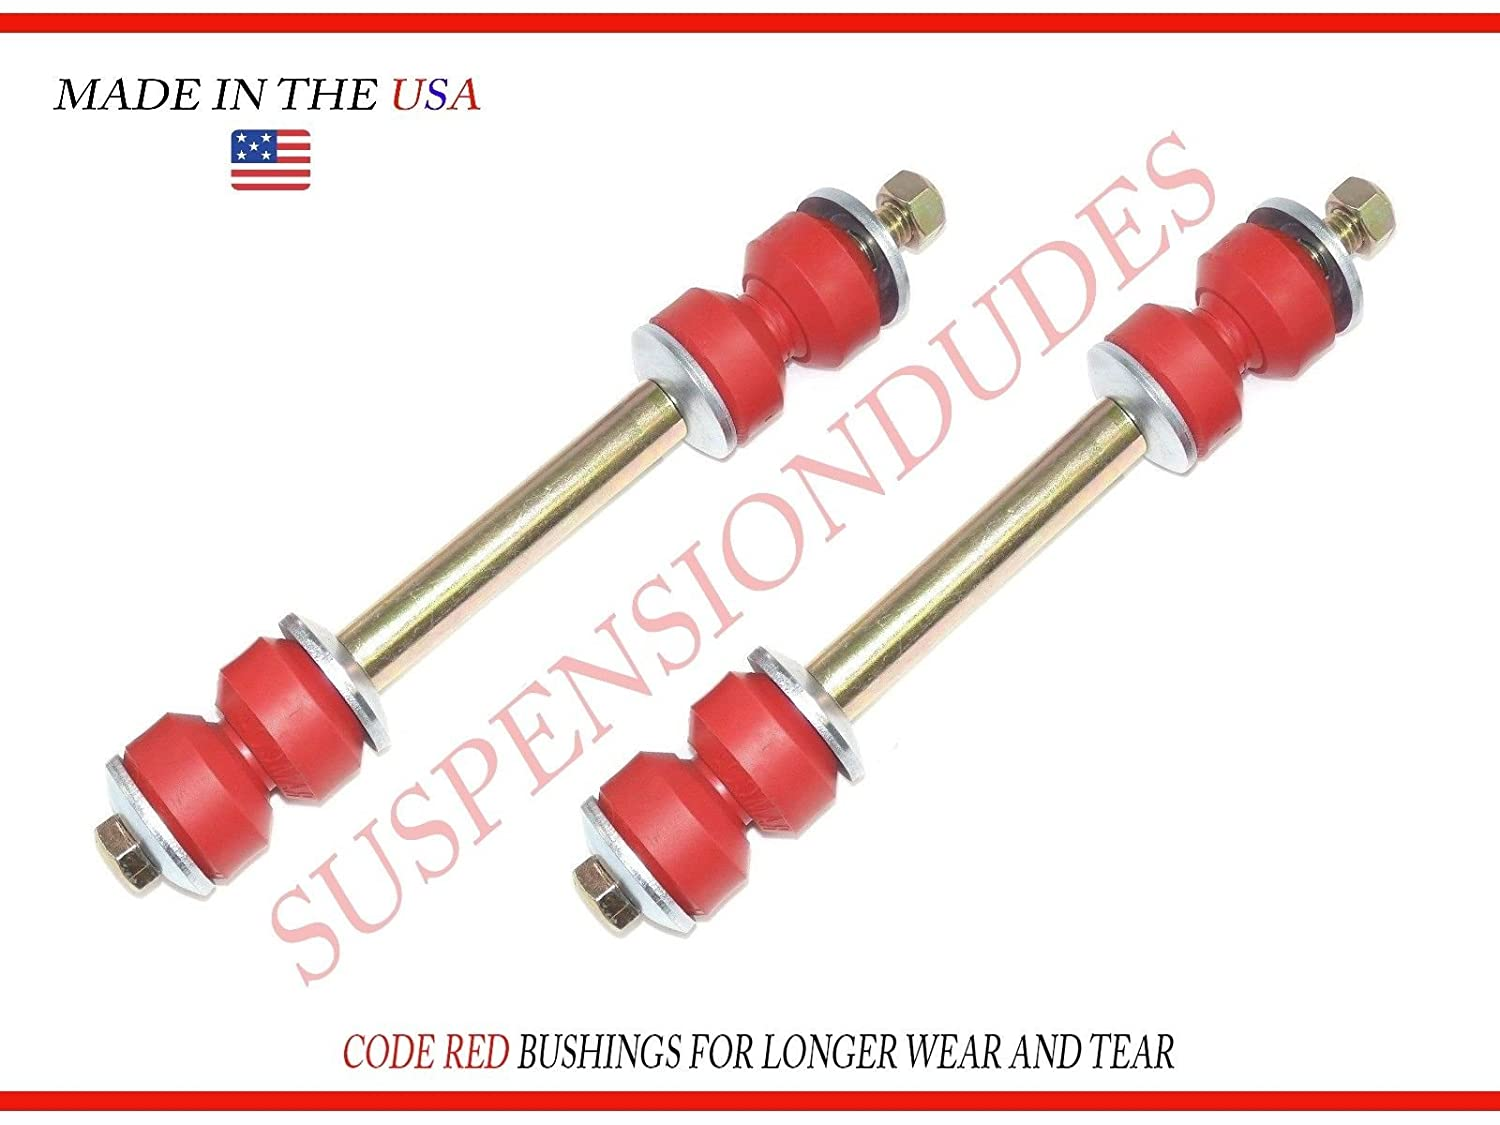 2 Rear STABILIZER BAR Links fits Ford Explorer BUSHINGS Made in The USA K80898 Suspension Dudes